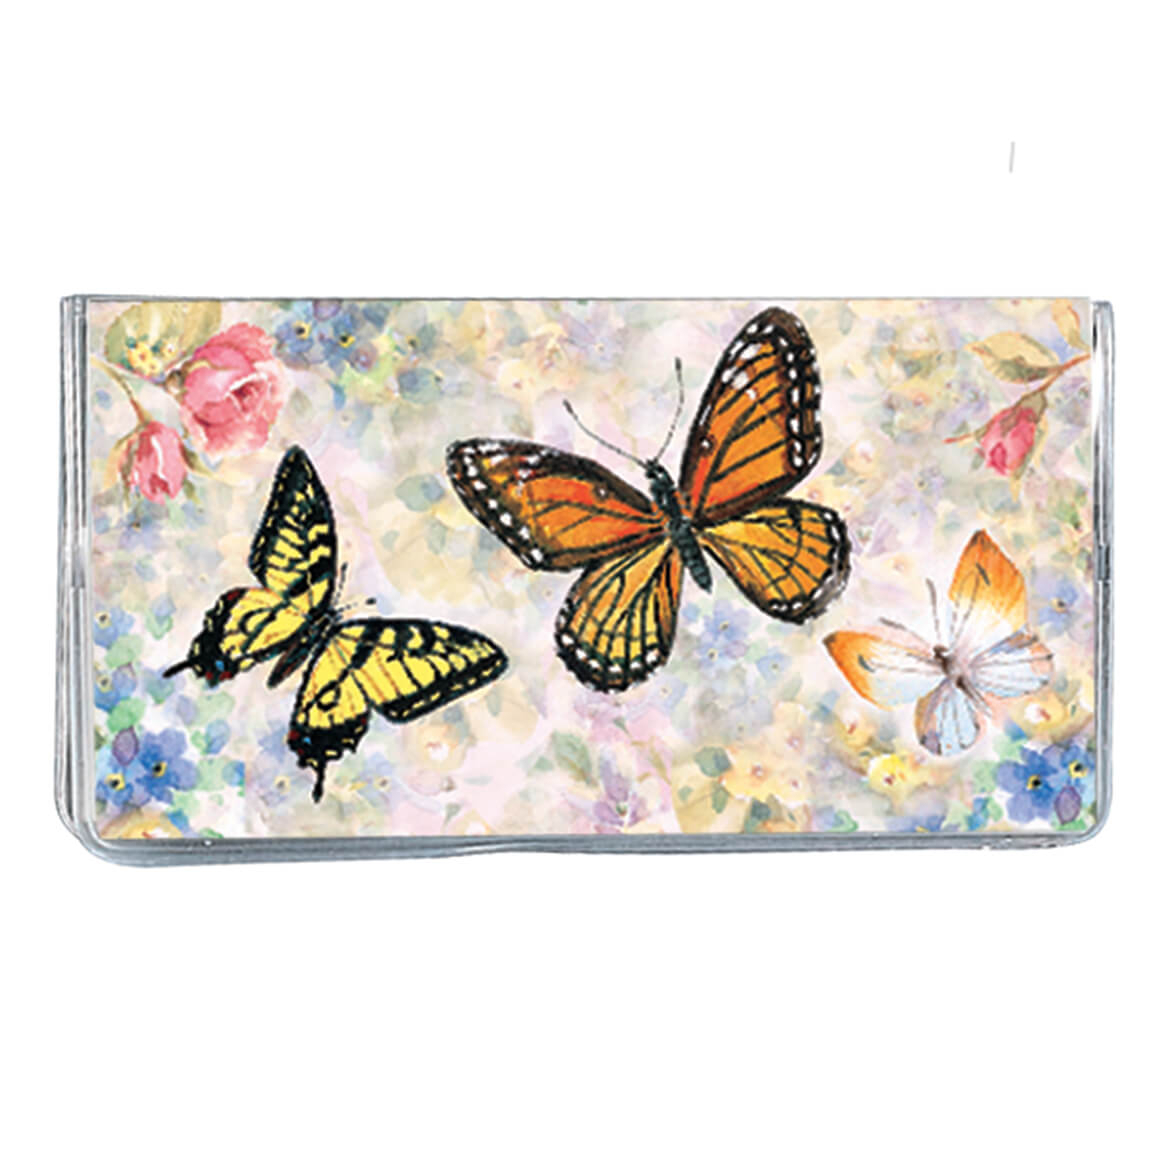 Butterfly Two Year Planner, 2021-2022 - Pocket Sized for Retail 4 5 4 Calendar 2022